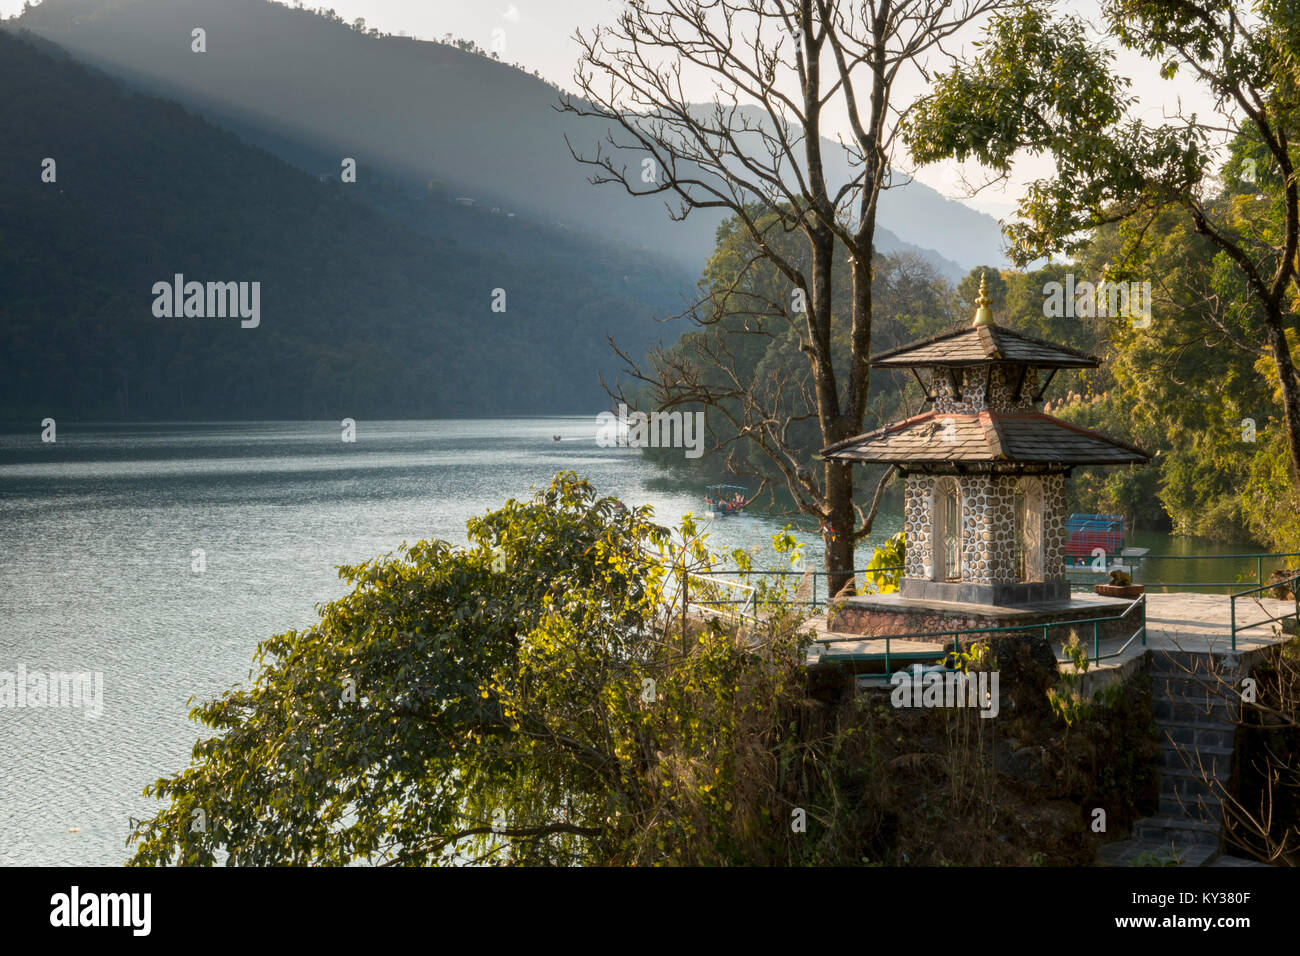 Scenic view of Phewa Lake, Pokhara, Nepal - Stock Image